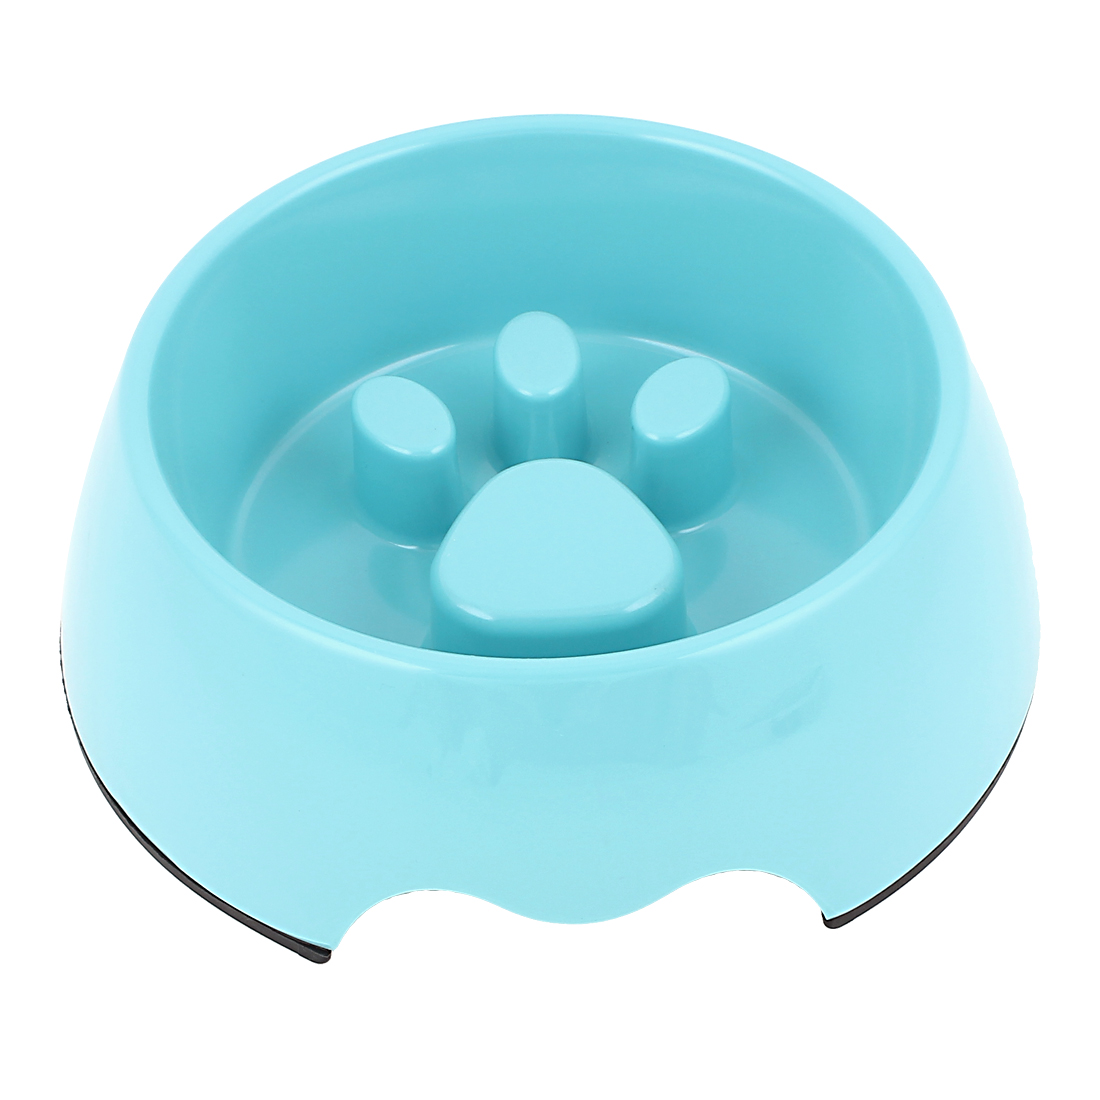 Plastic Pet Cat Puppy Stop Fast Slow Eating Bloat Dish Feeder Bowl Blue